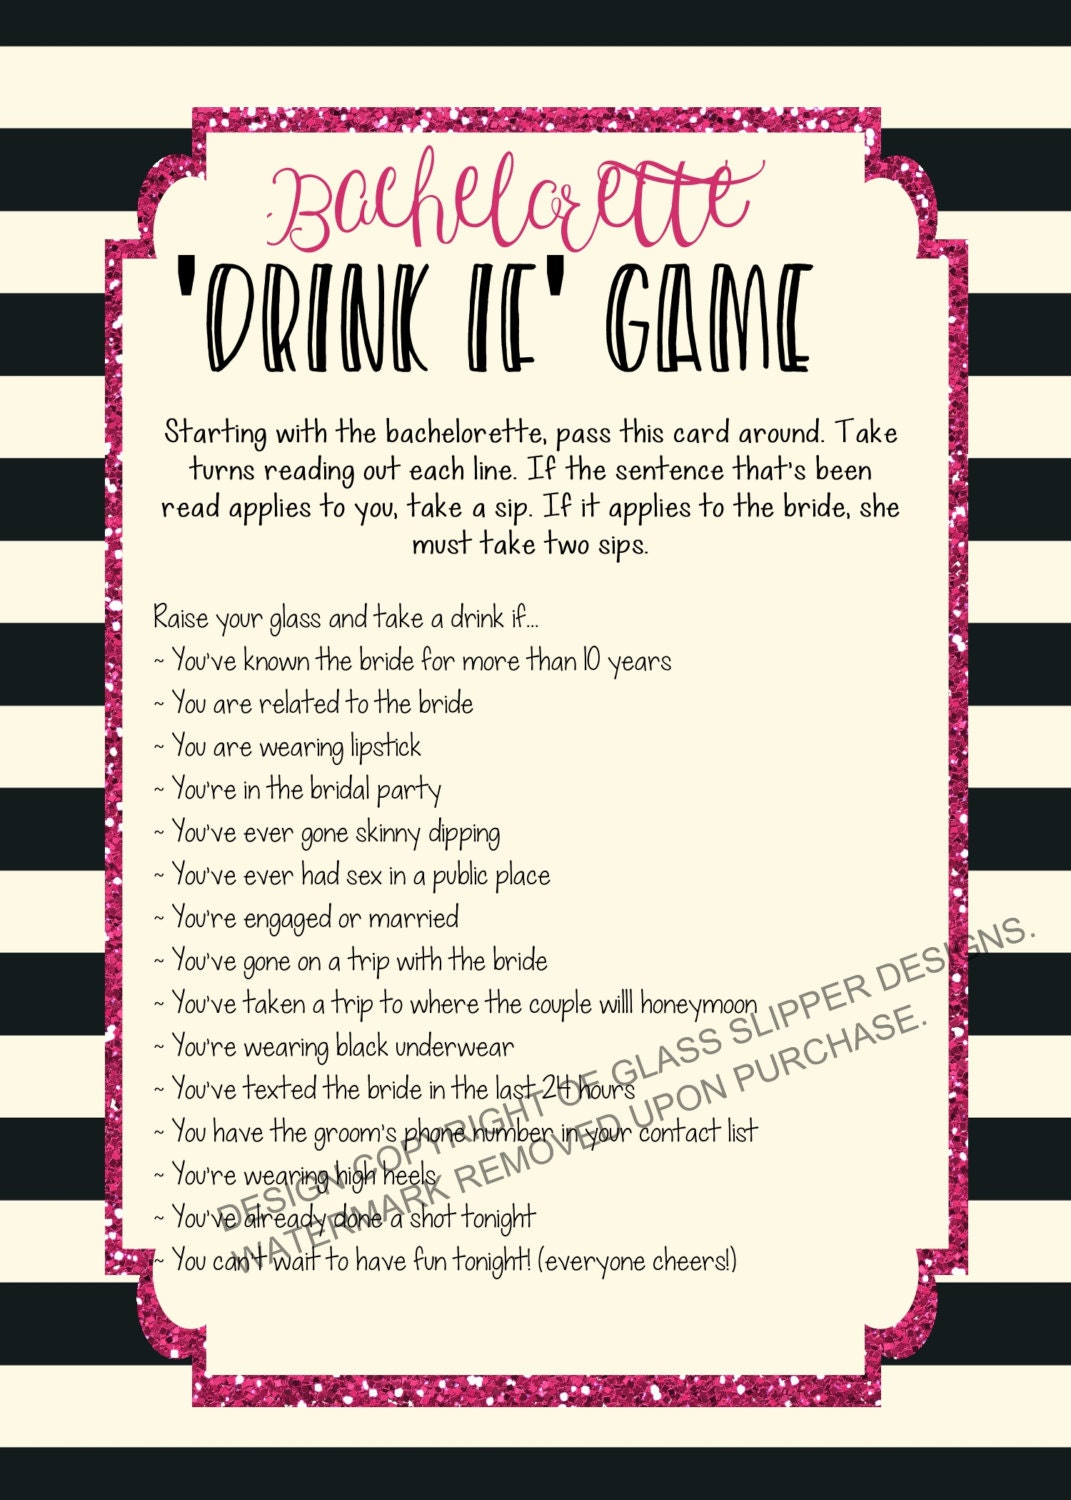 12 Awesome Bachelorette Party Games (+Guide) - IcebreakerIdeas